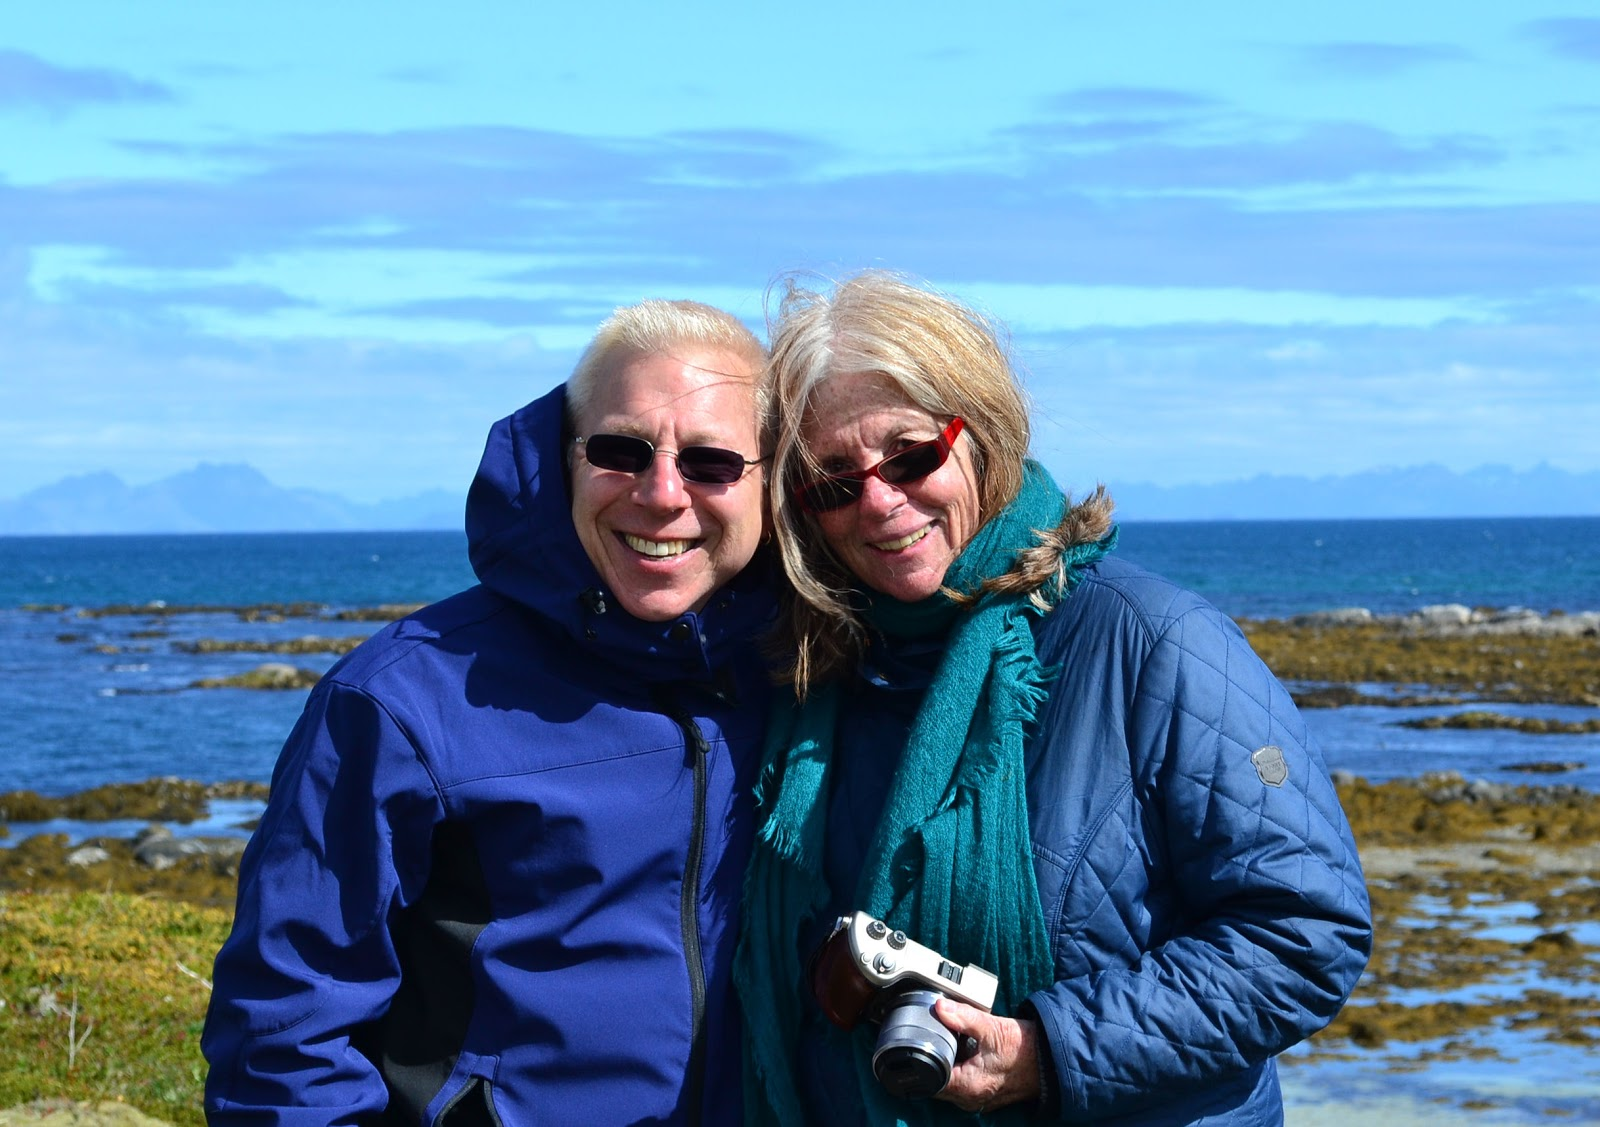 Susan and I enjoying a few links at Lofoten Links in Hov, Norway.